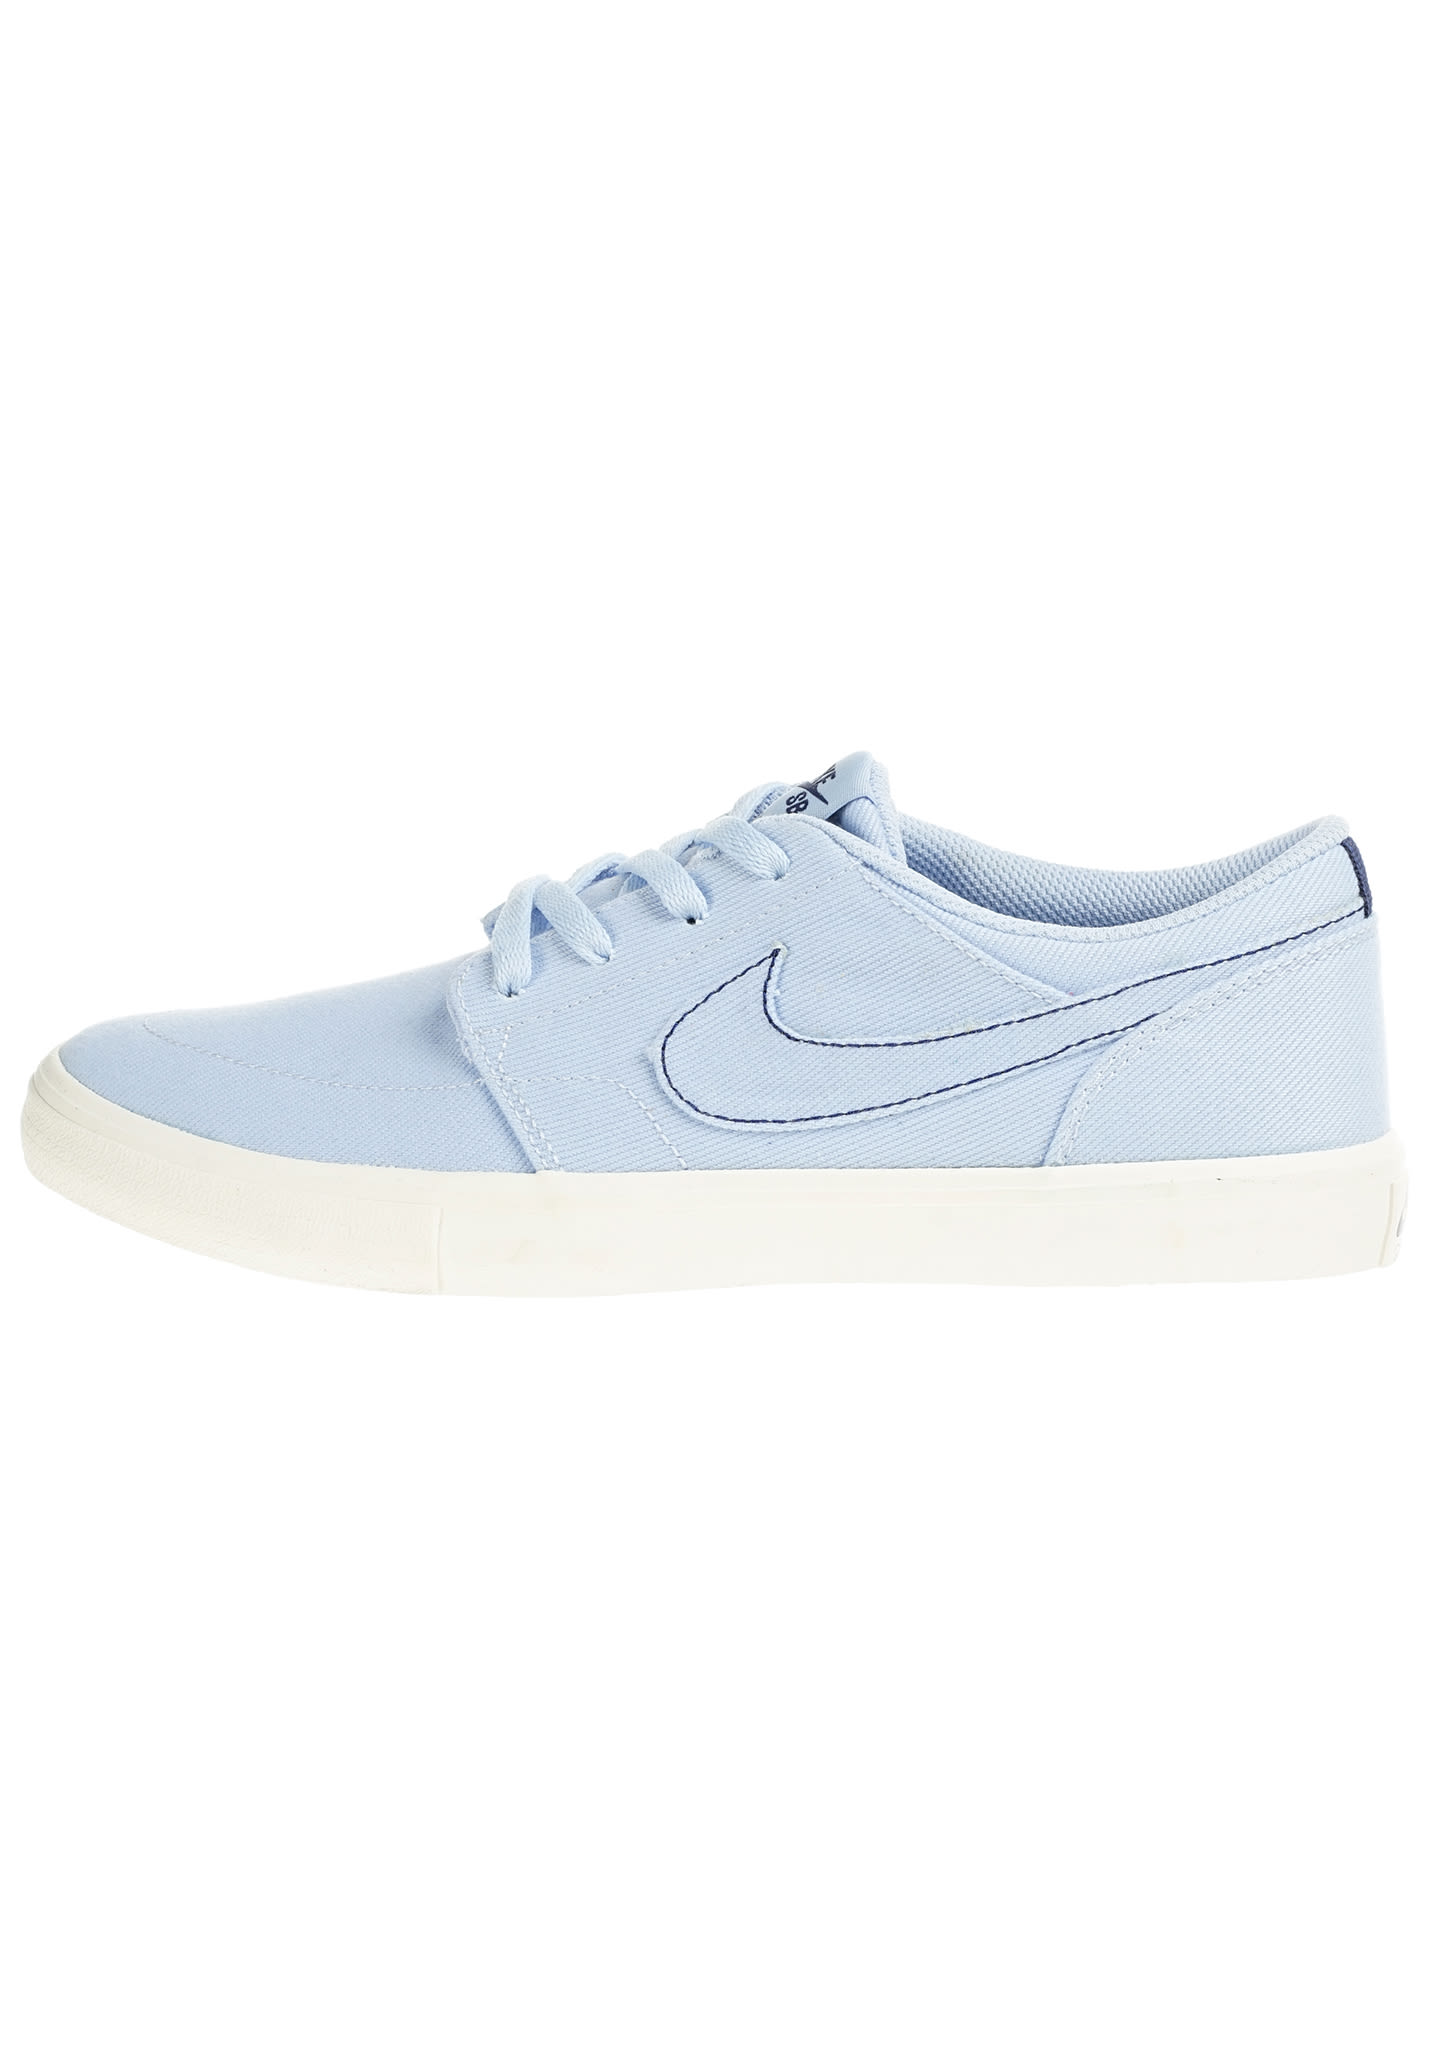 8a01bd72e2f2 NIKE SB Portmore Ii Slr C - Sneakers for Women - Blue - Planet Sports